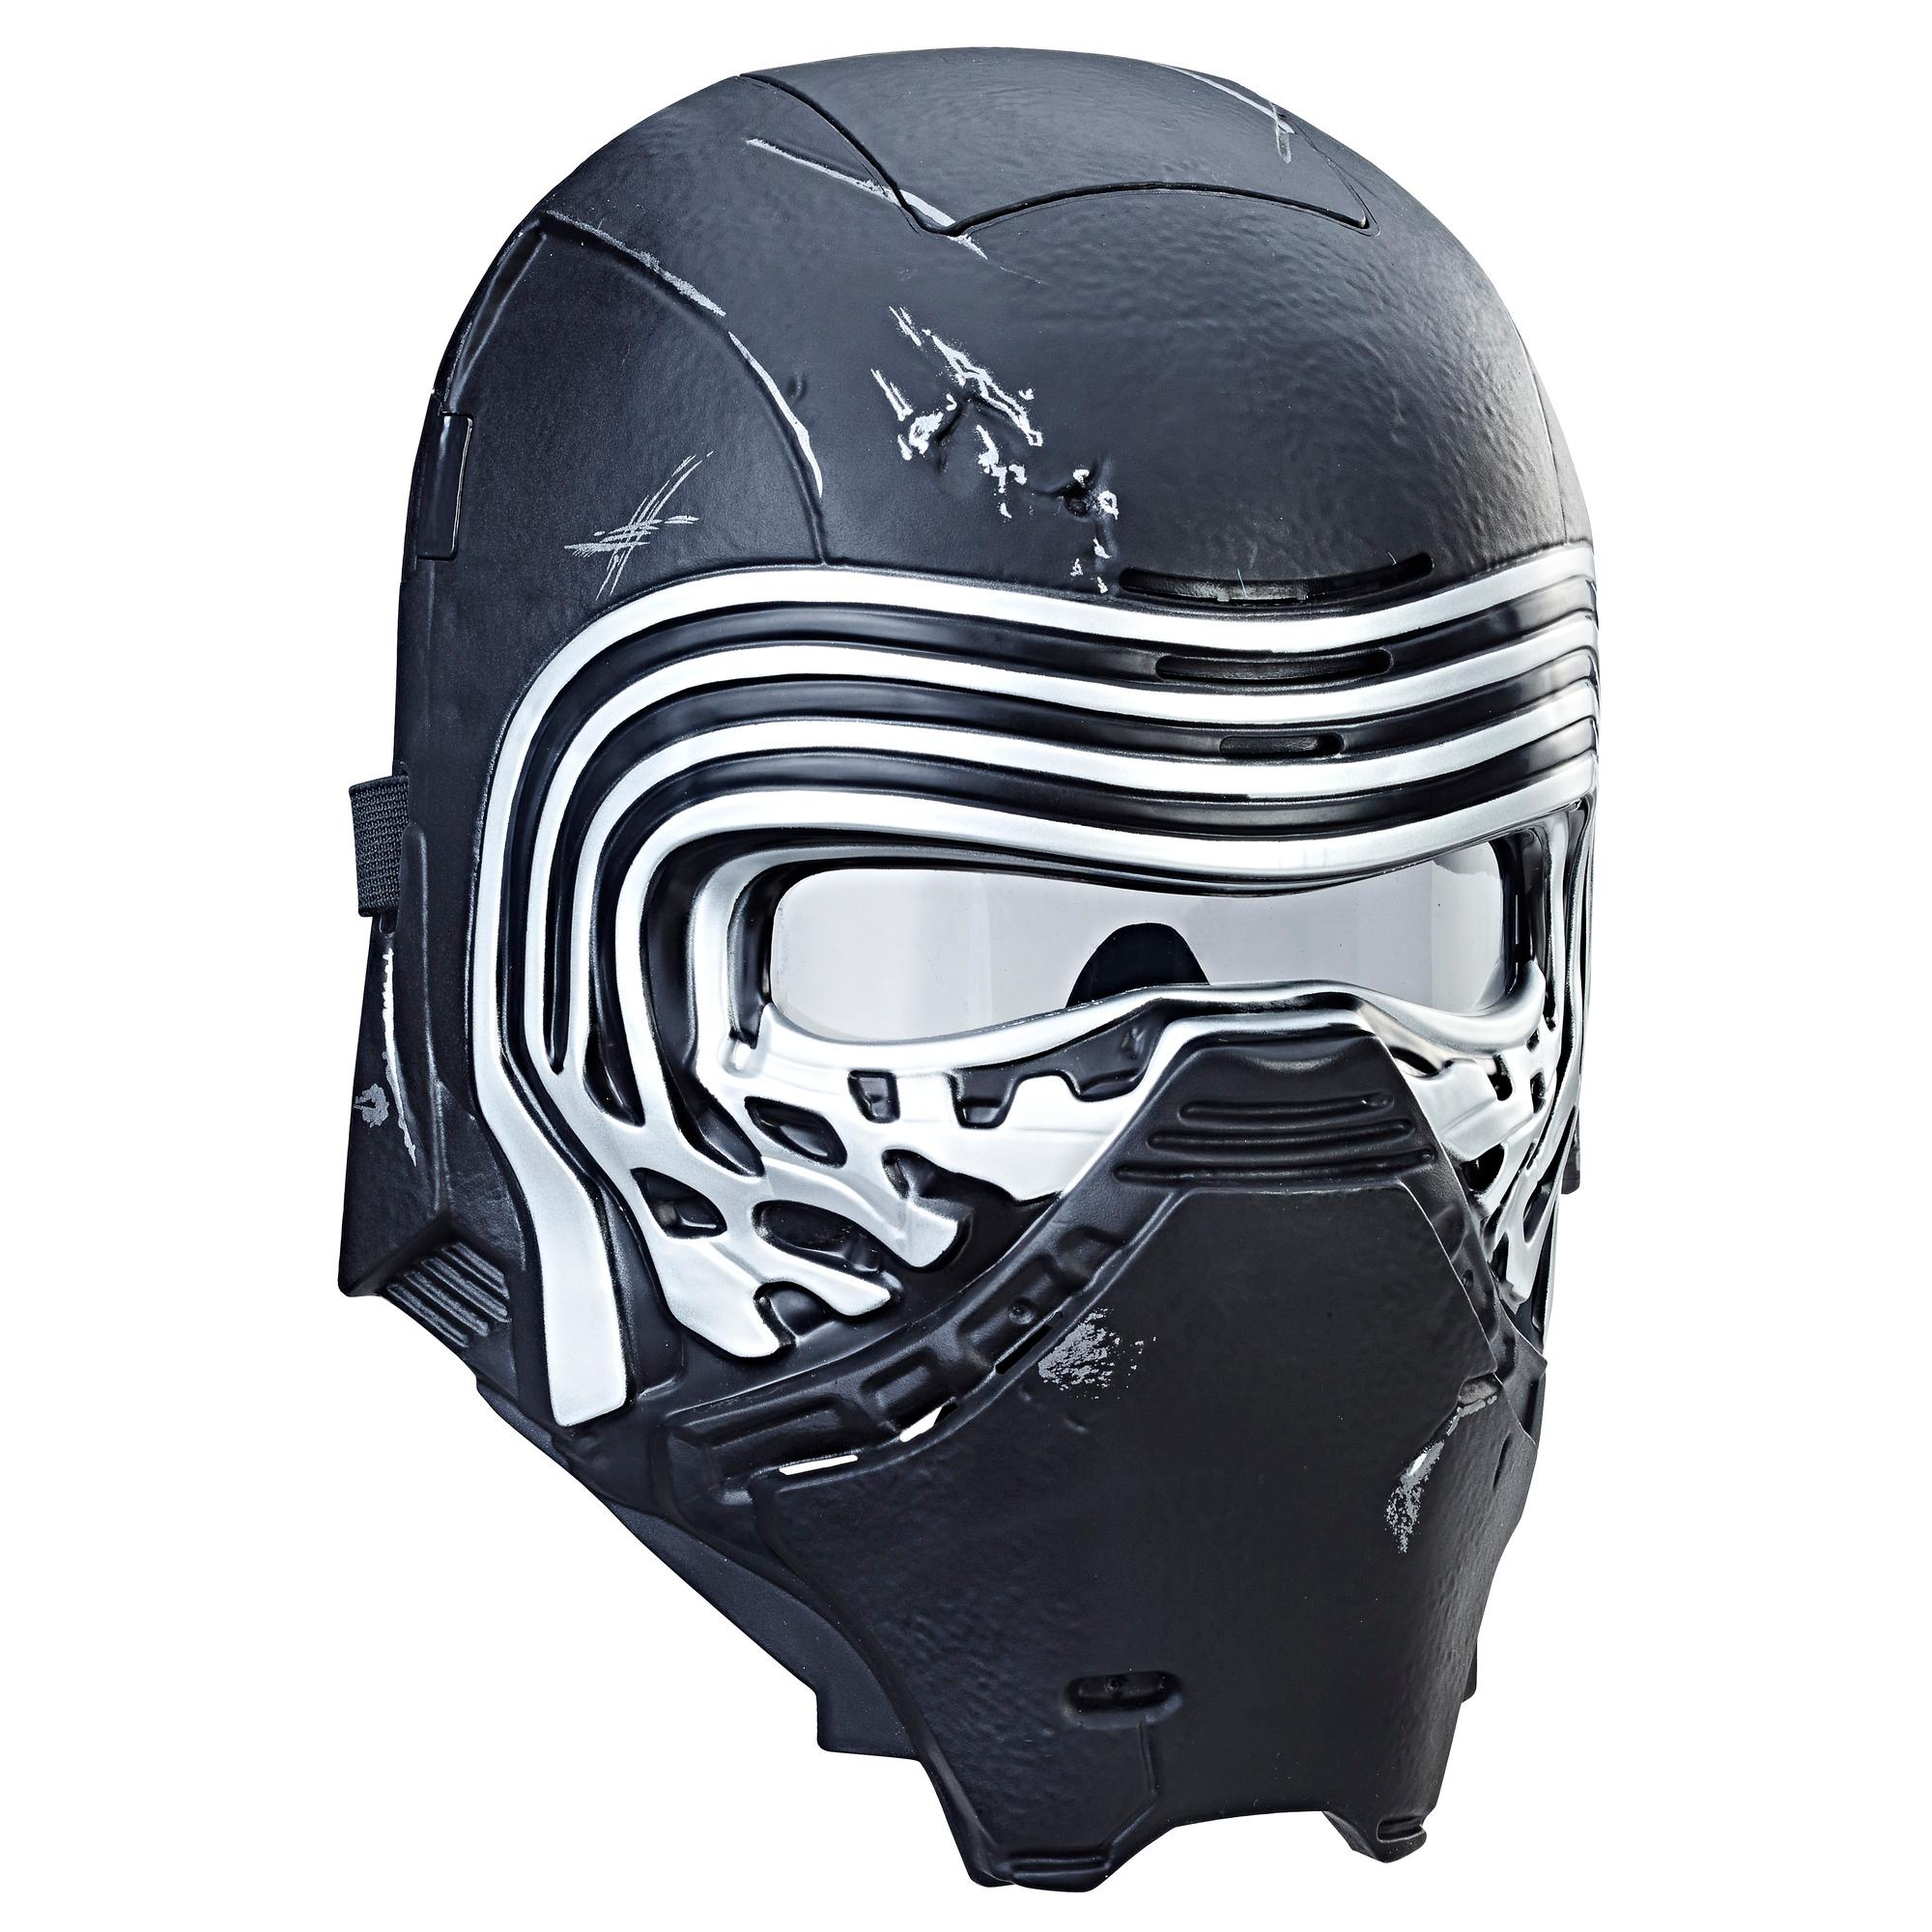 Star Wars: The Last Jedi Kylo Ren Electronic Voice Changer Mask